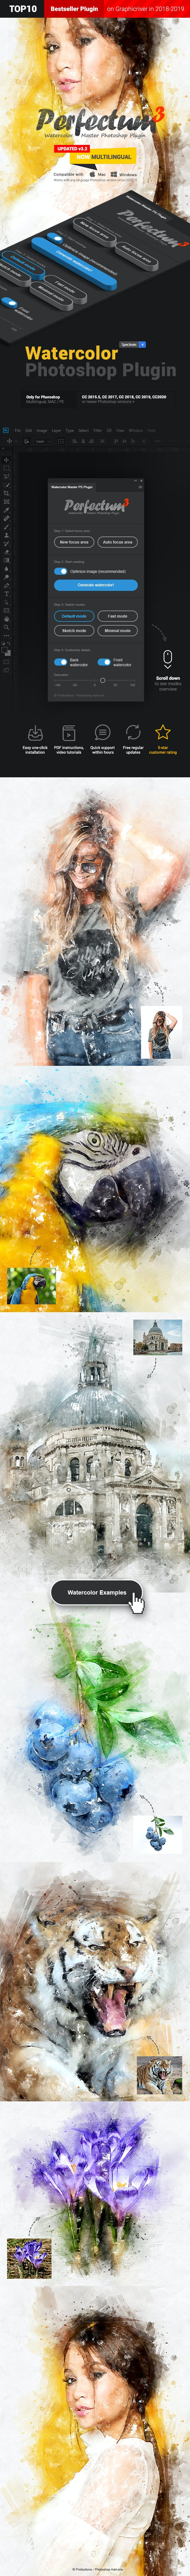 Watercolor Master - Perfectum 3 - Photoshop Plugin - Photo Effects Actions